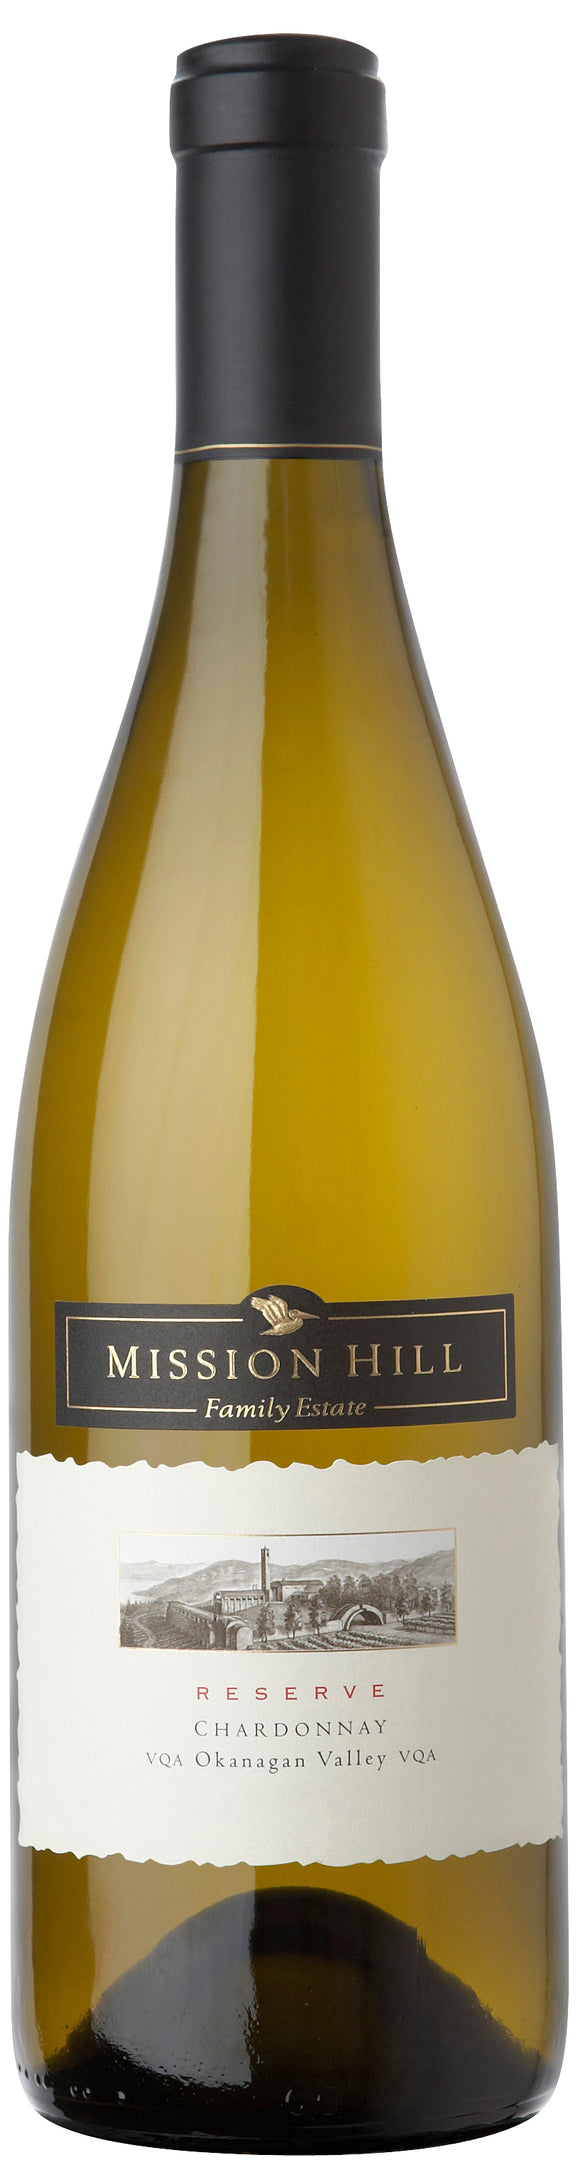 MISSION HILL FAMILY ESTATE RESERVE CHARDONNAY 750 ML